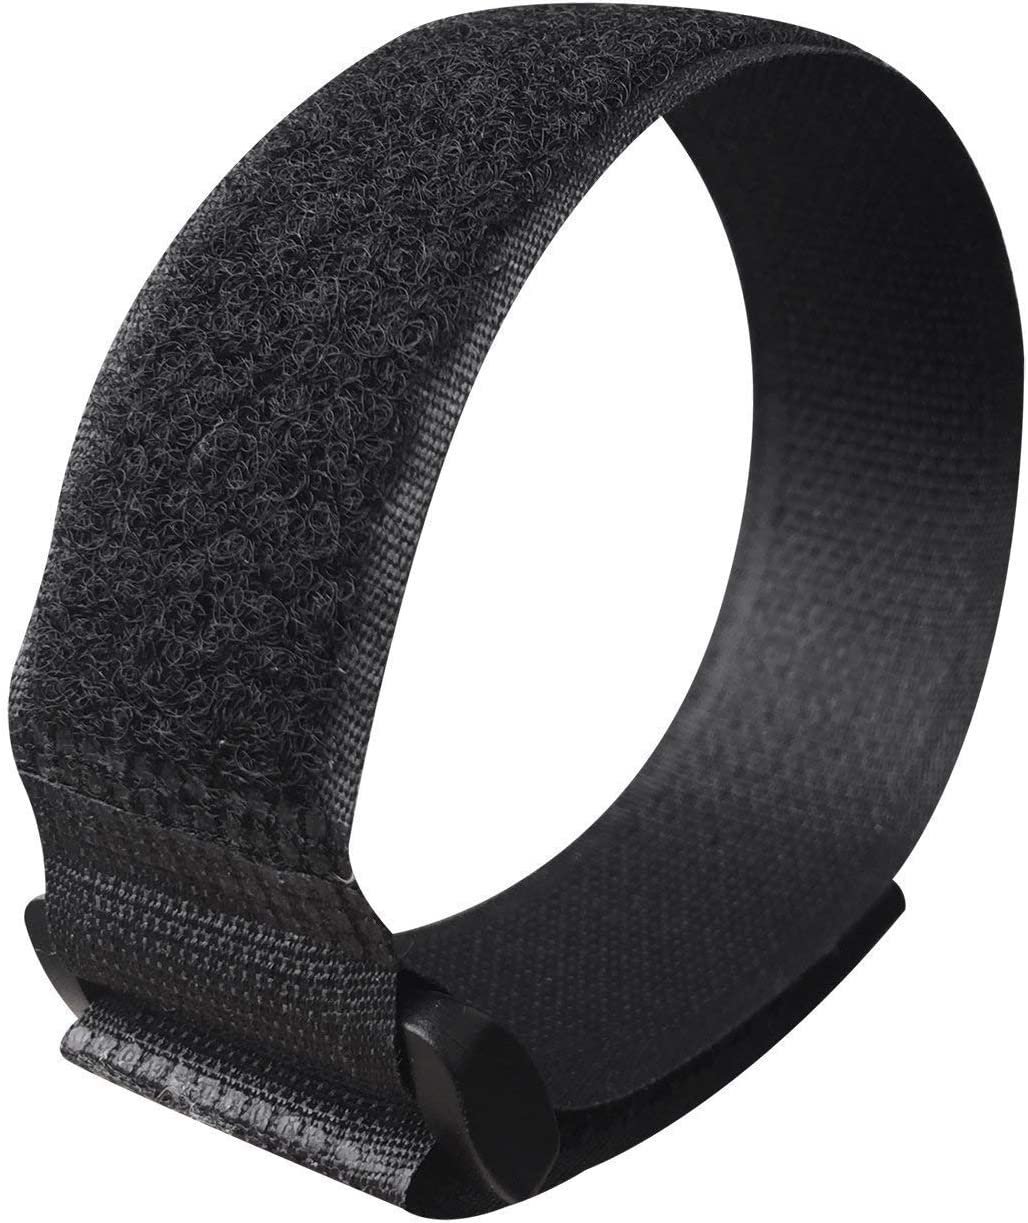 Reusable Cinch Straps 1 x 20 Pack of 10 Hook and Loop Straps